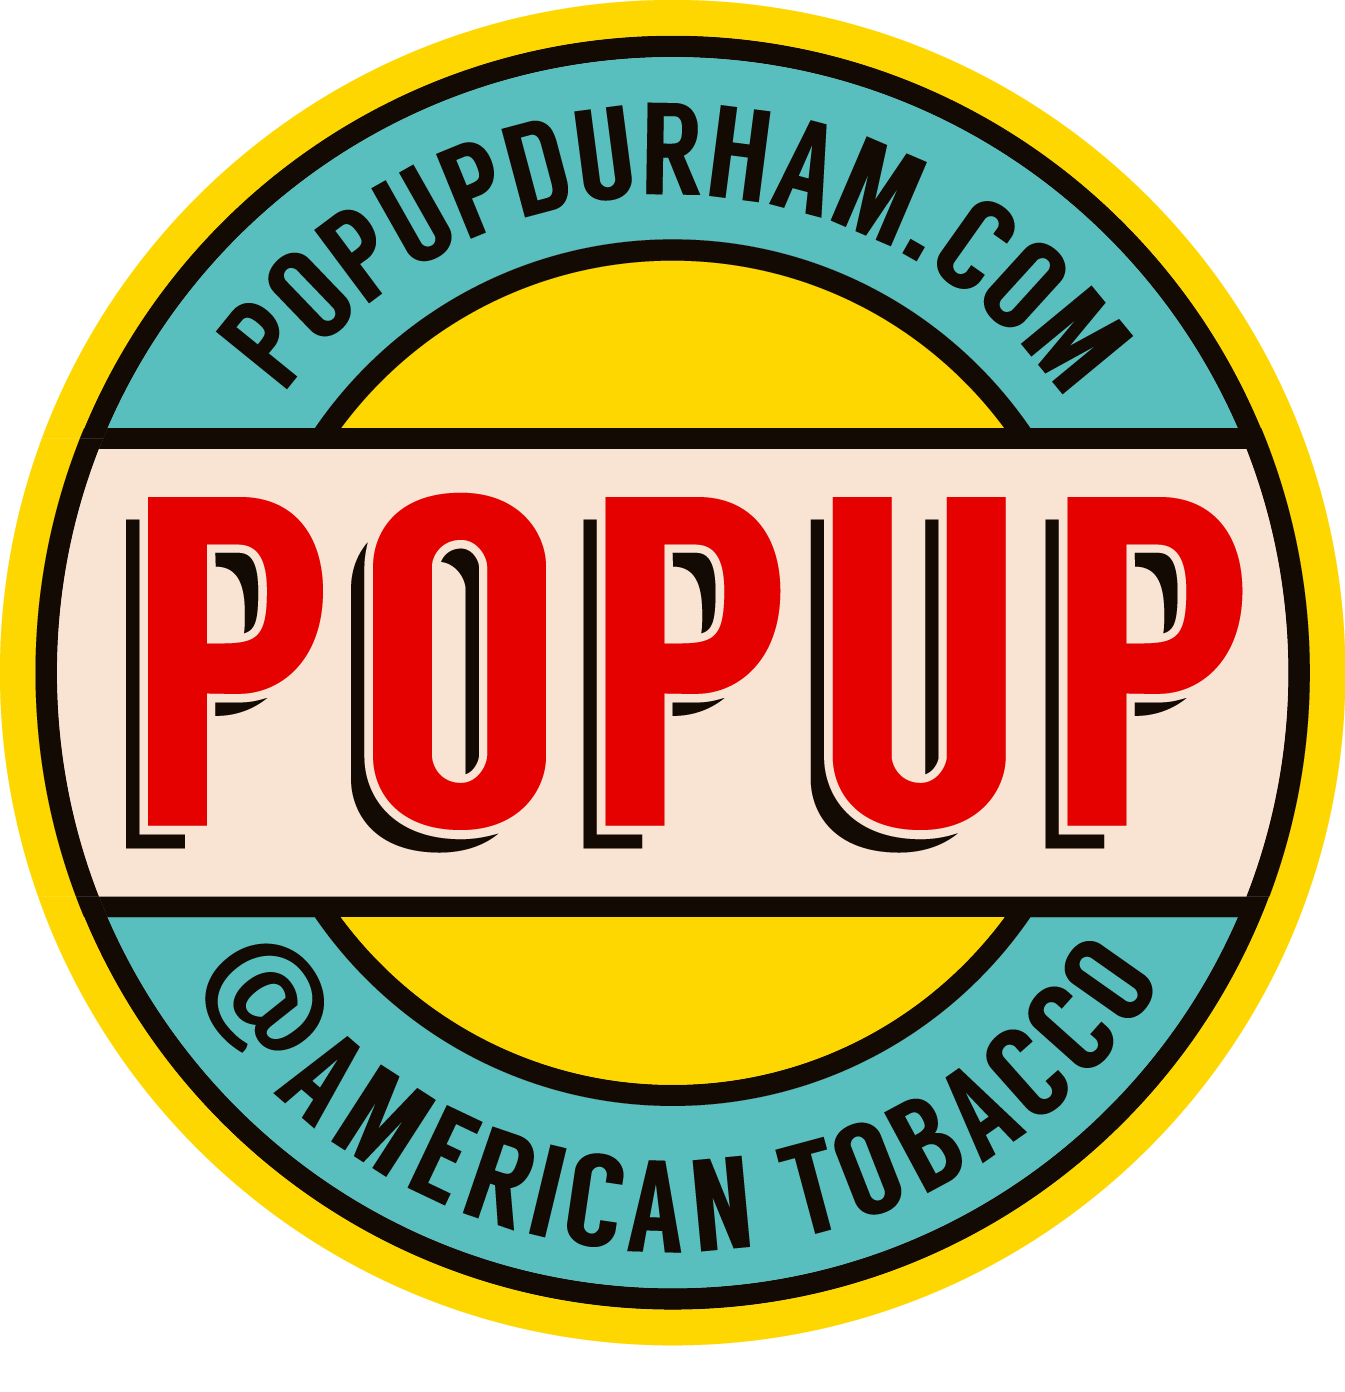 PopUp @ American Tobacco Campus Announces First Tenant